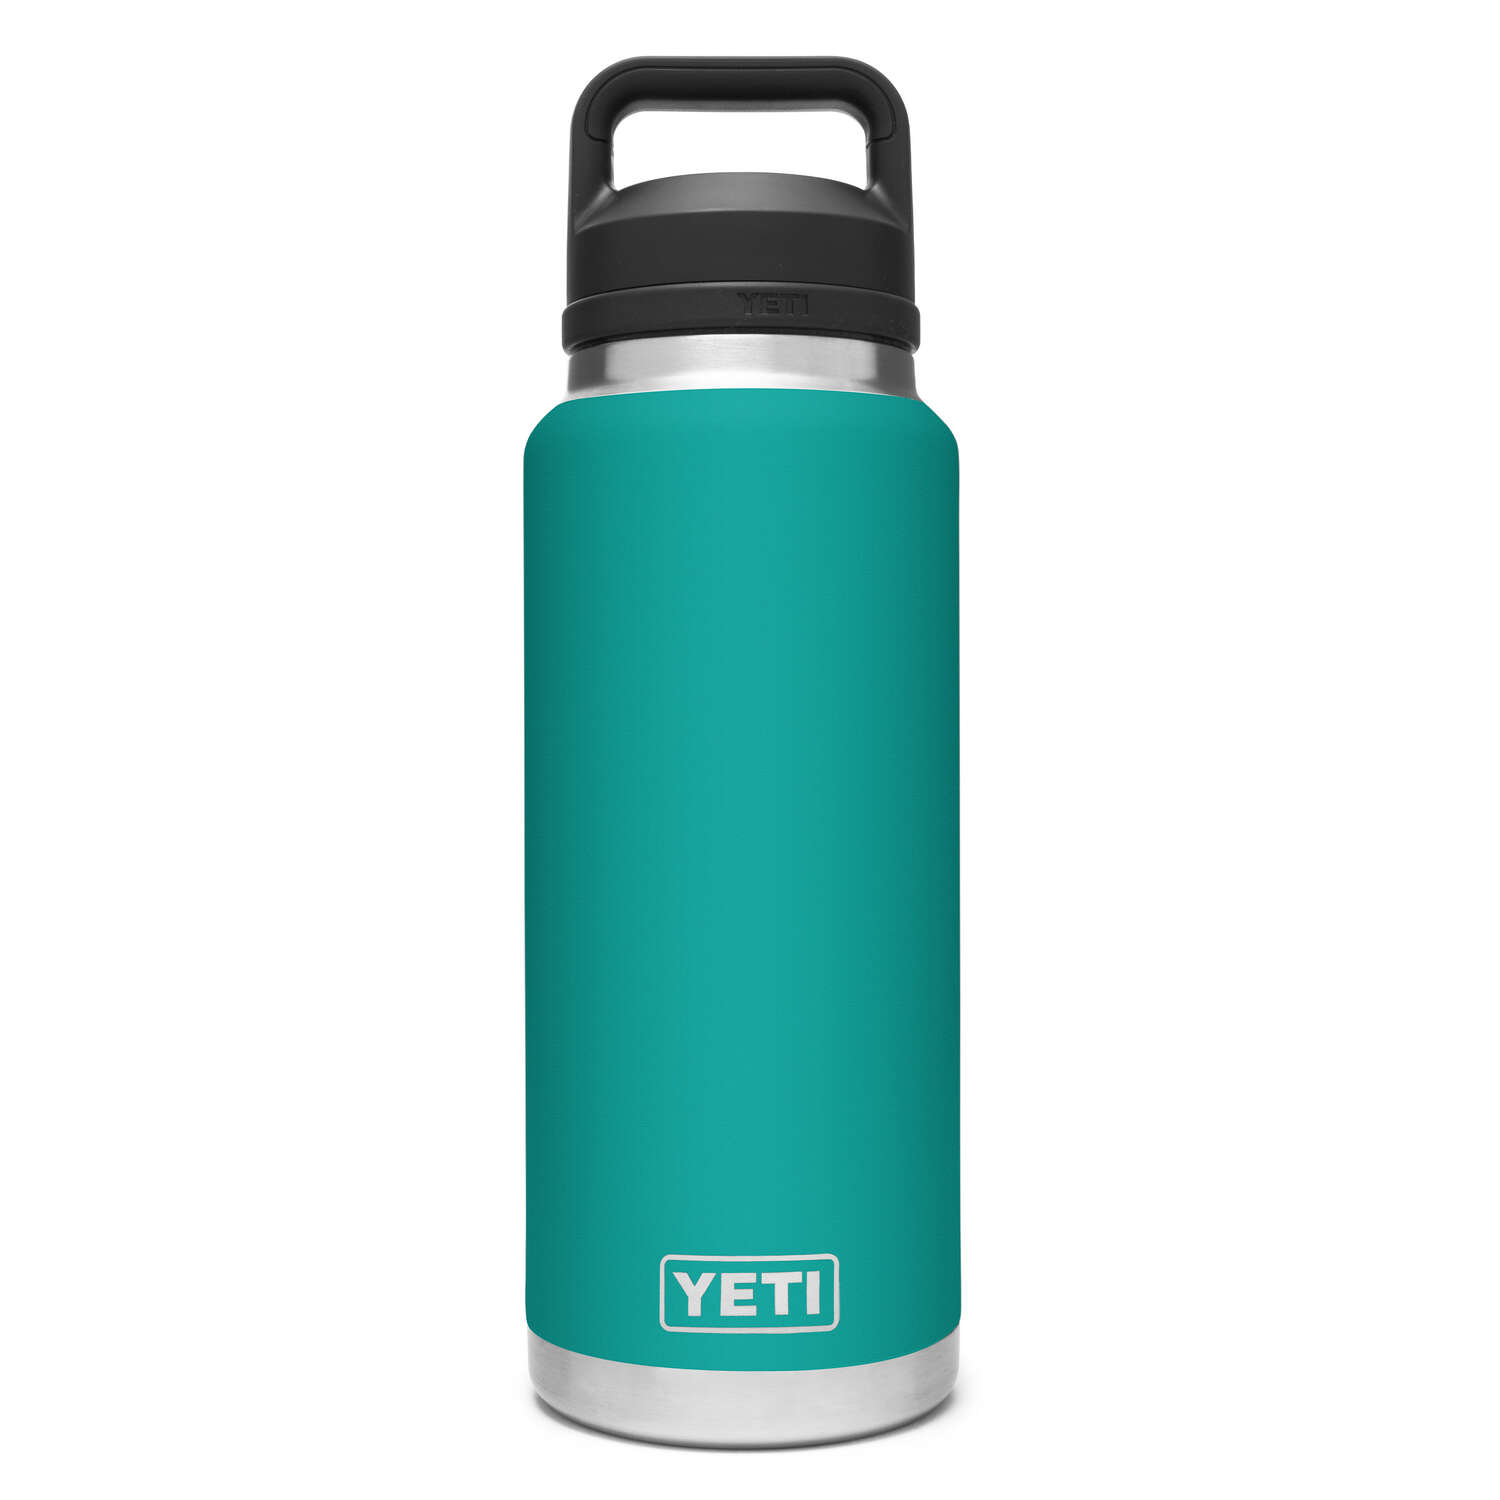 YETI Rambler 36 oz. Aquifer Blue BPA Free Vacuum Insulated Bottle